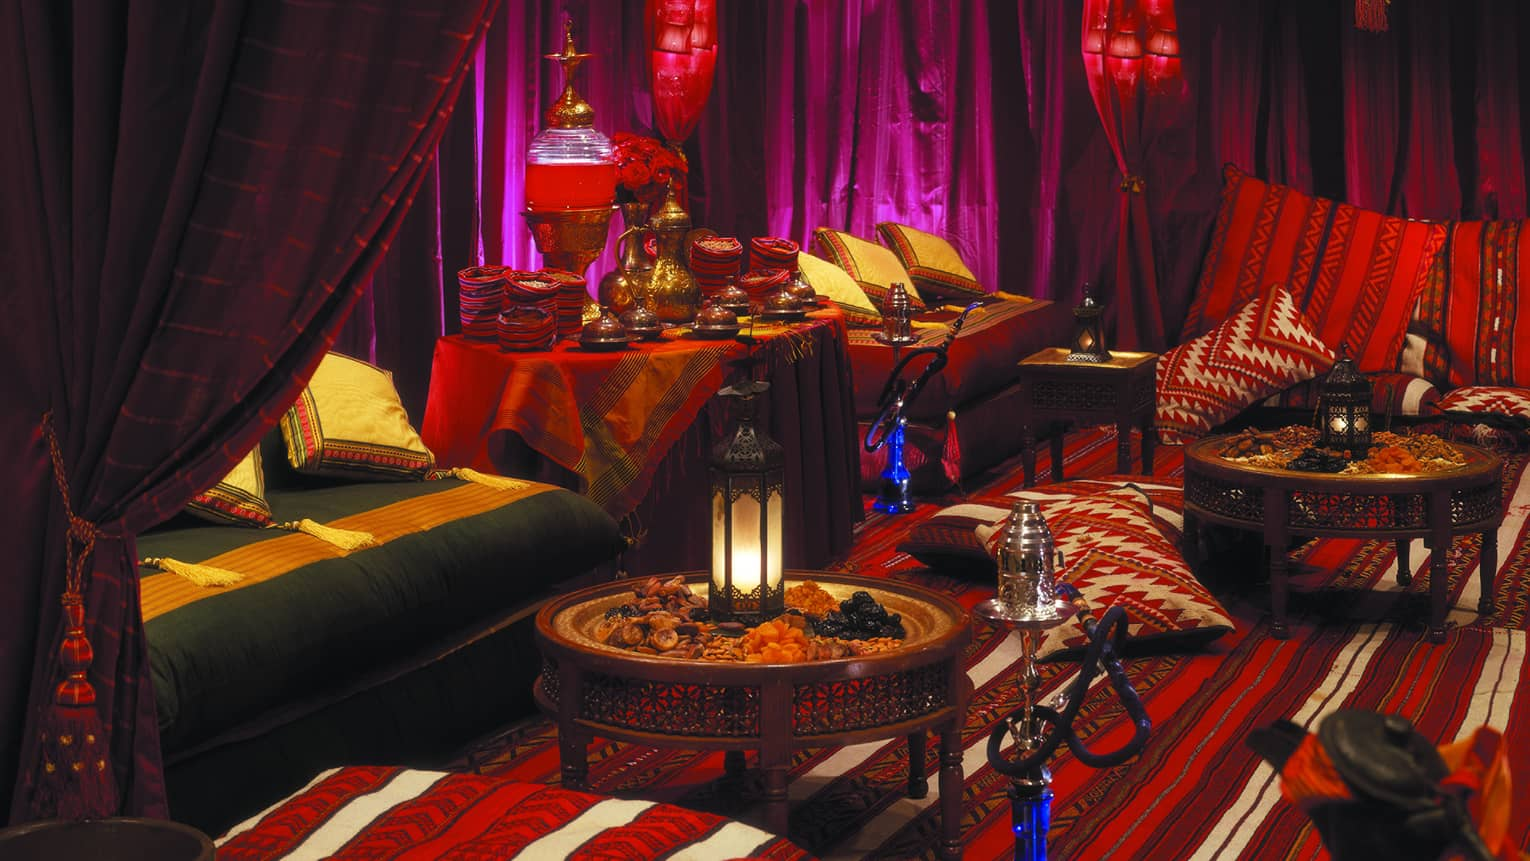 Arabian banquet seating area with pillows, curtains in deep reds and purples, lanterns